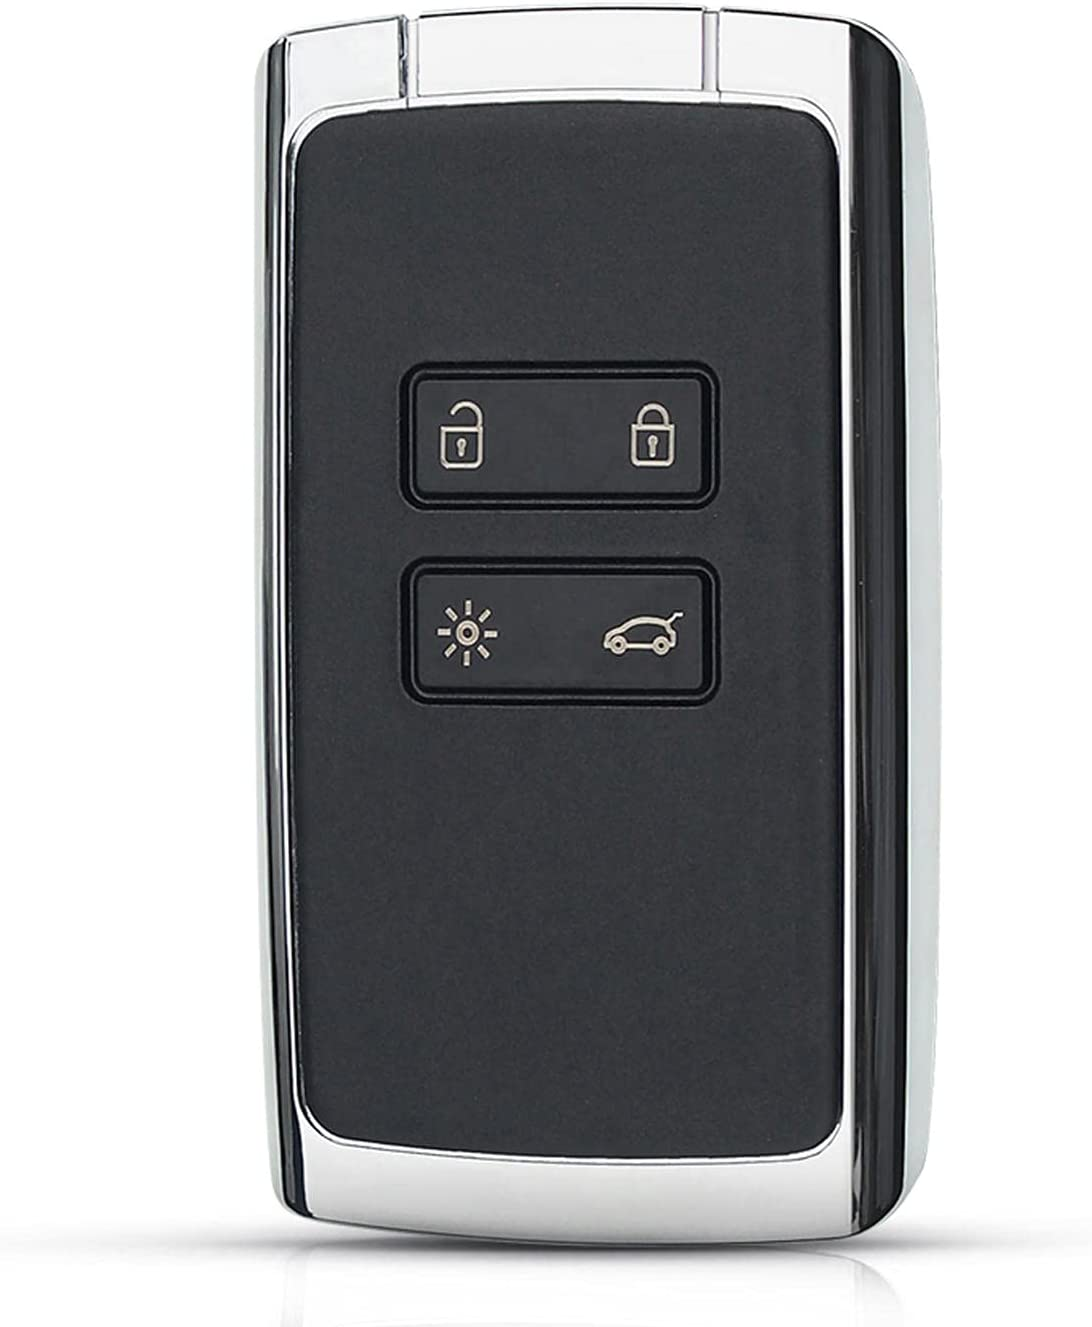 FLJKCT Max 61% OFF 4 Buttons Remote Key Shell for Many popular brands Replacement Car